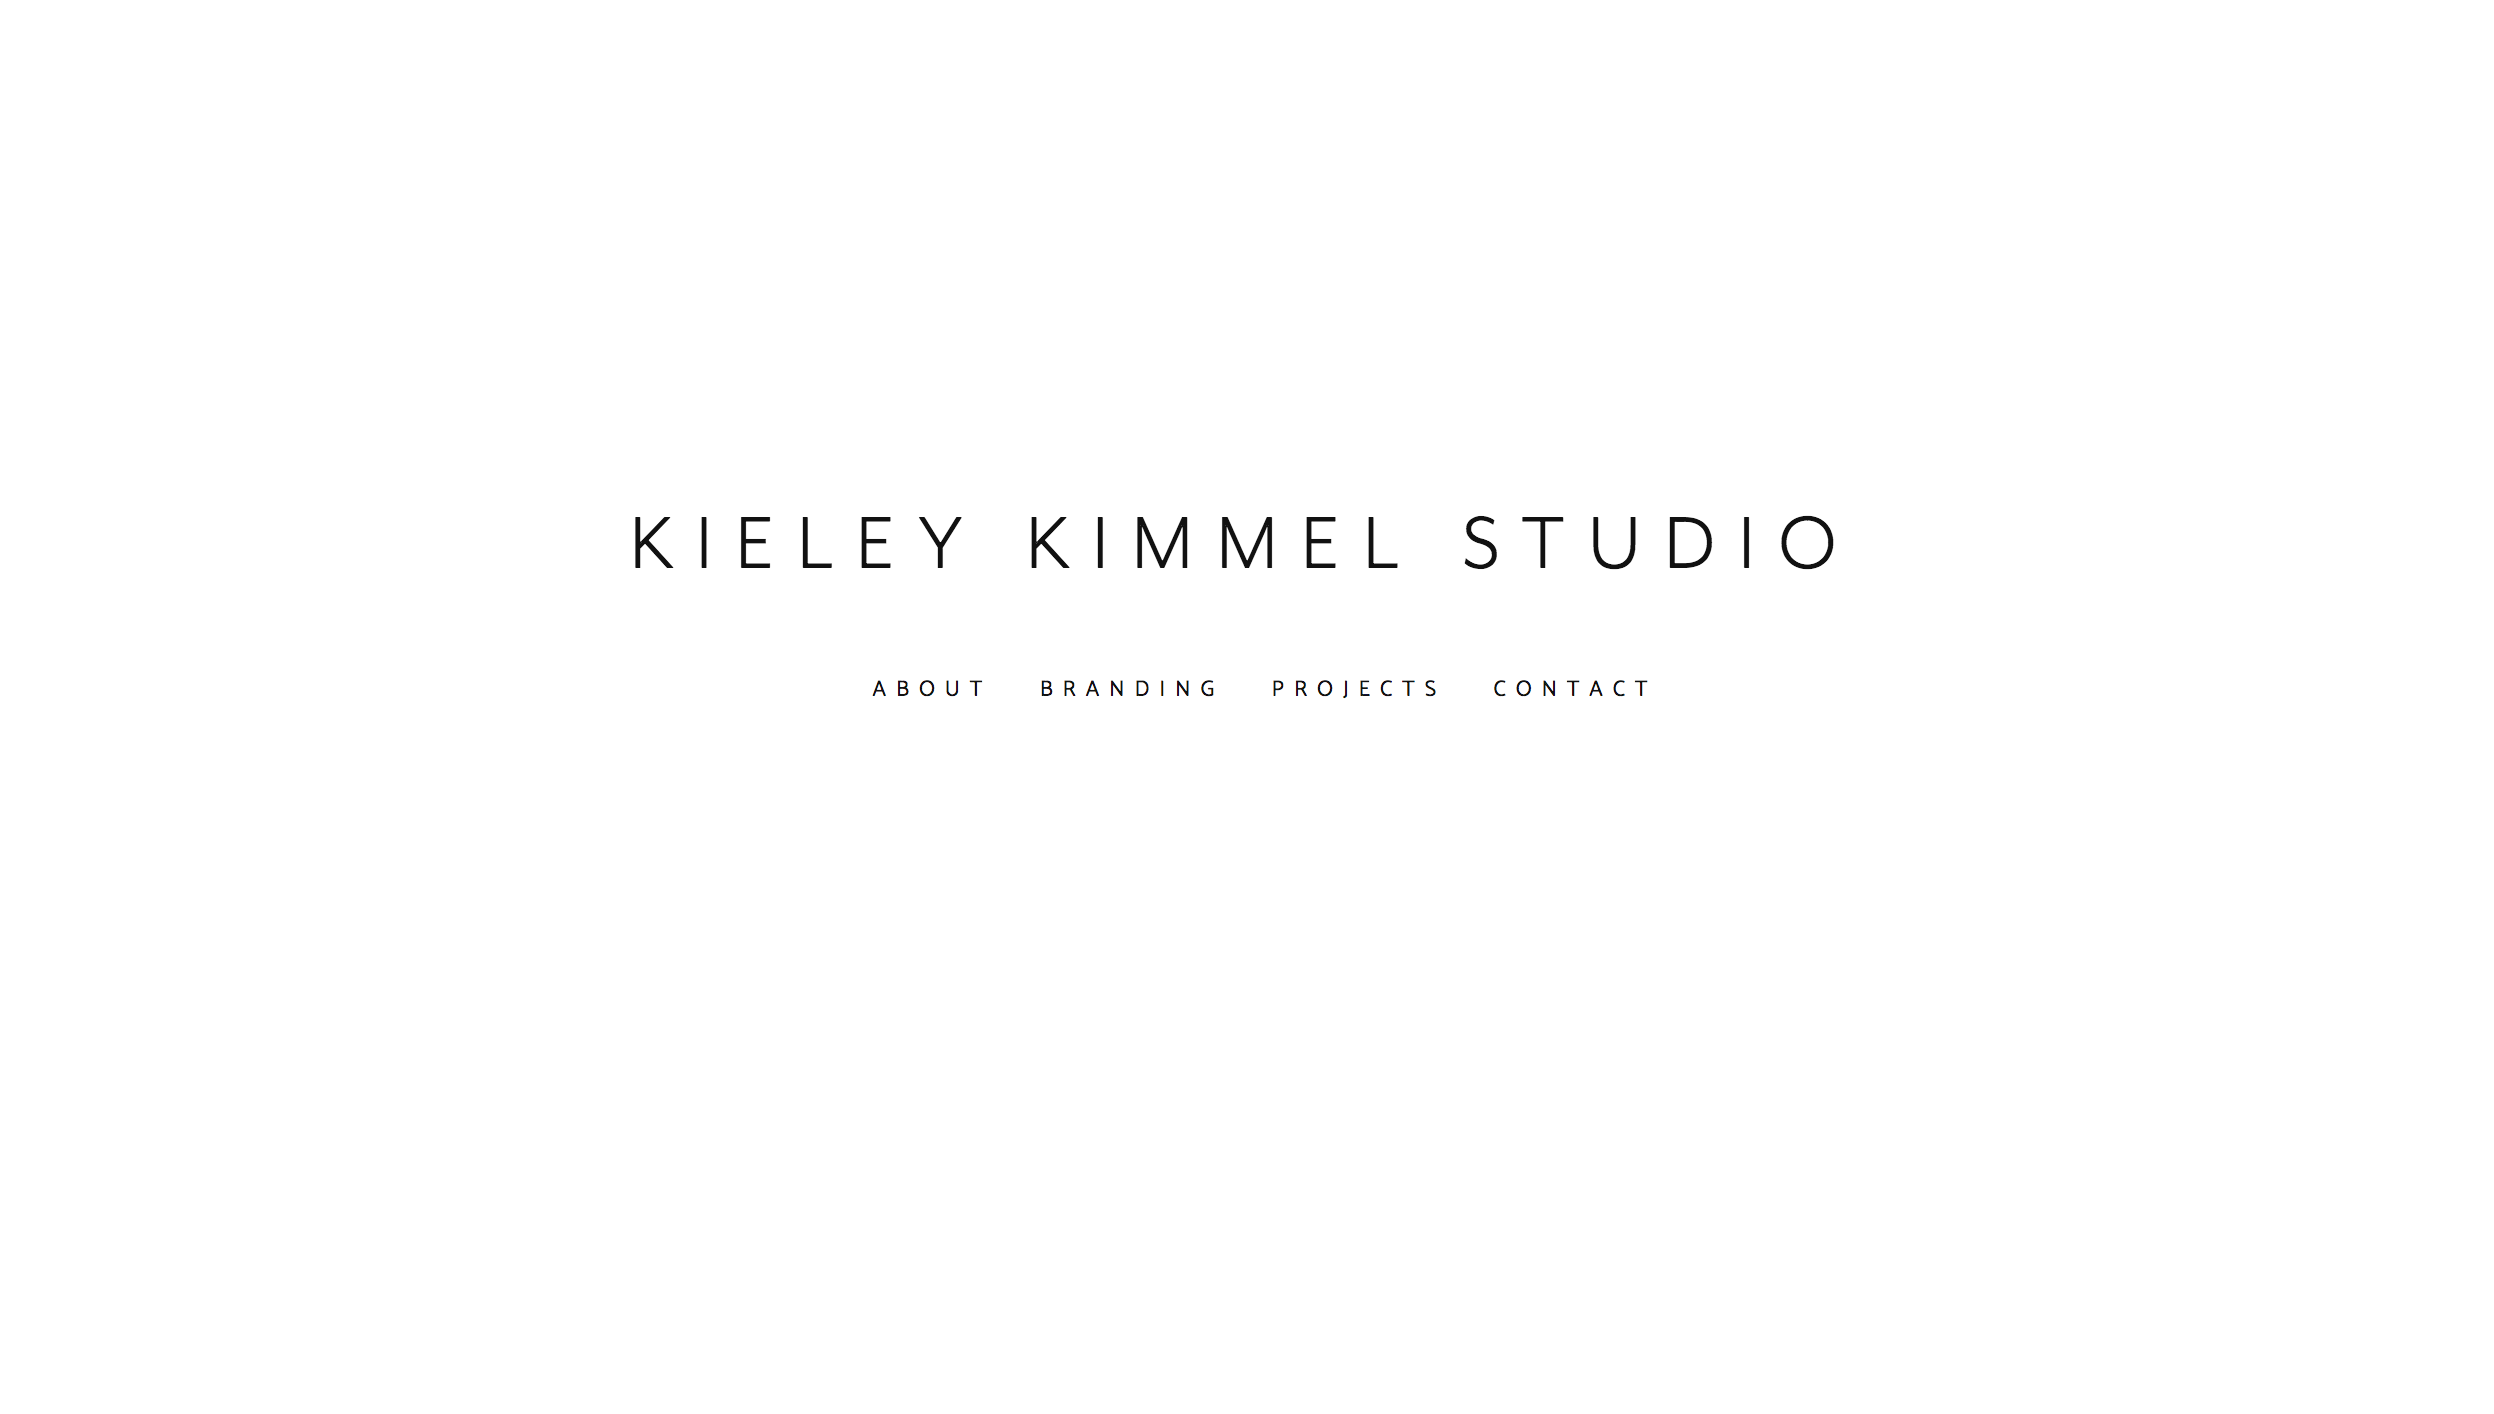 kieley kimmel studio [brand consultancy]